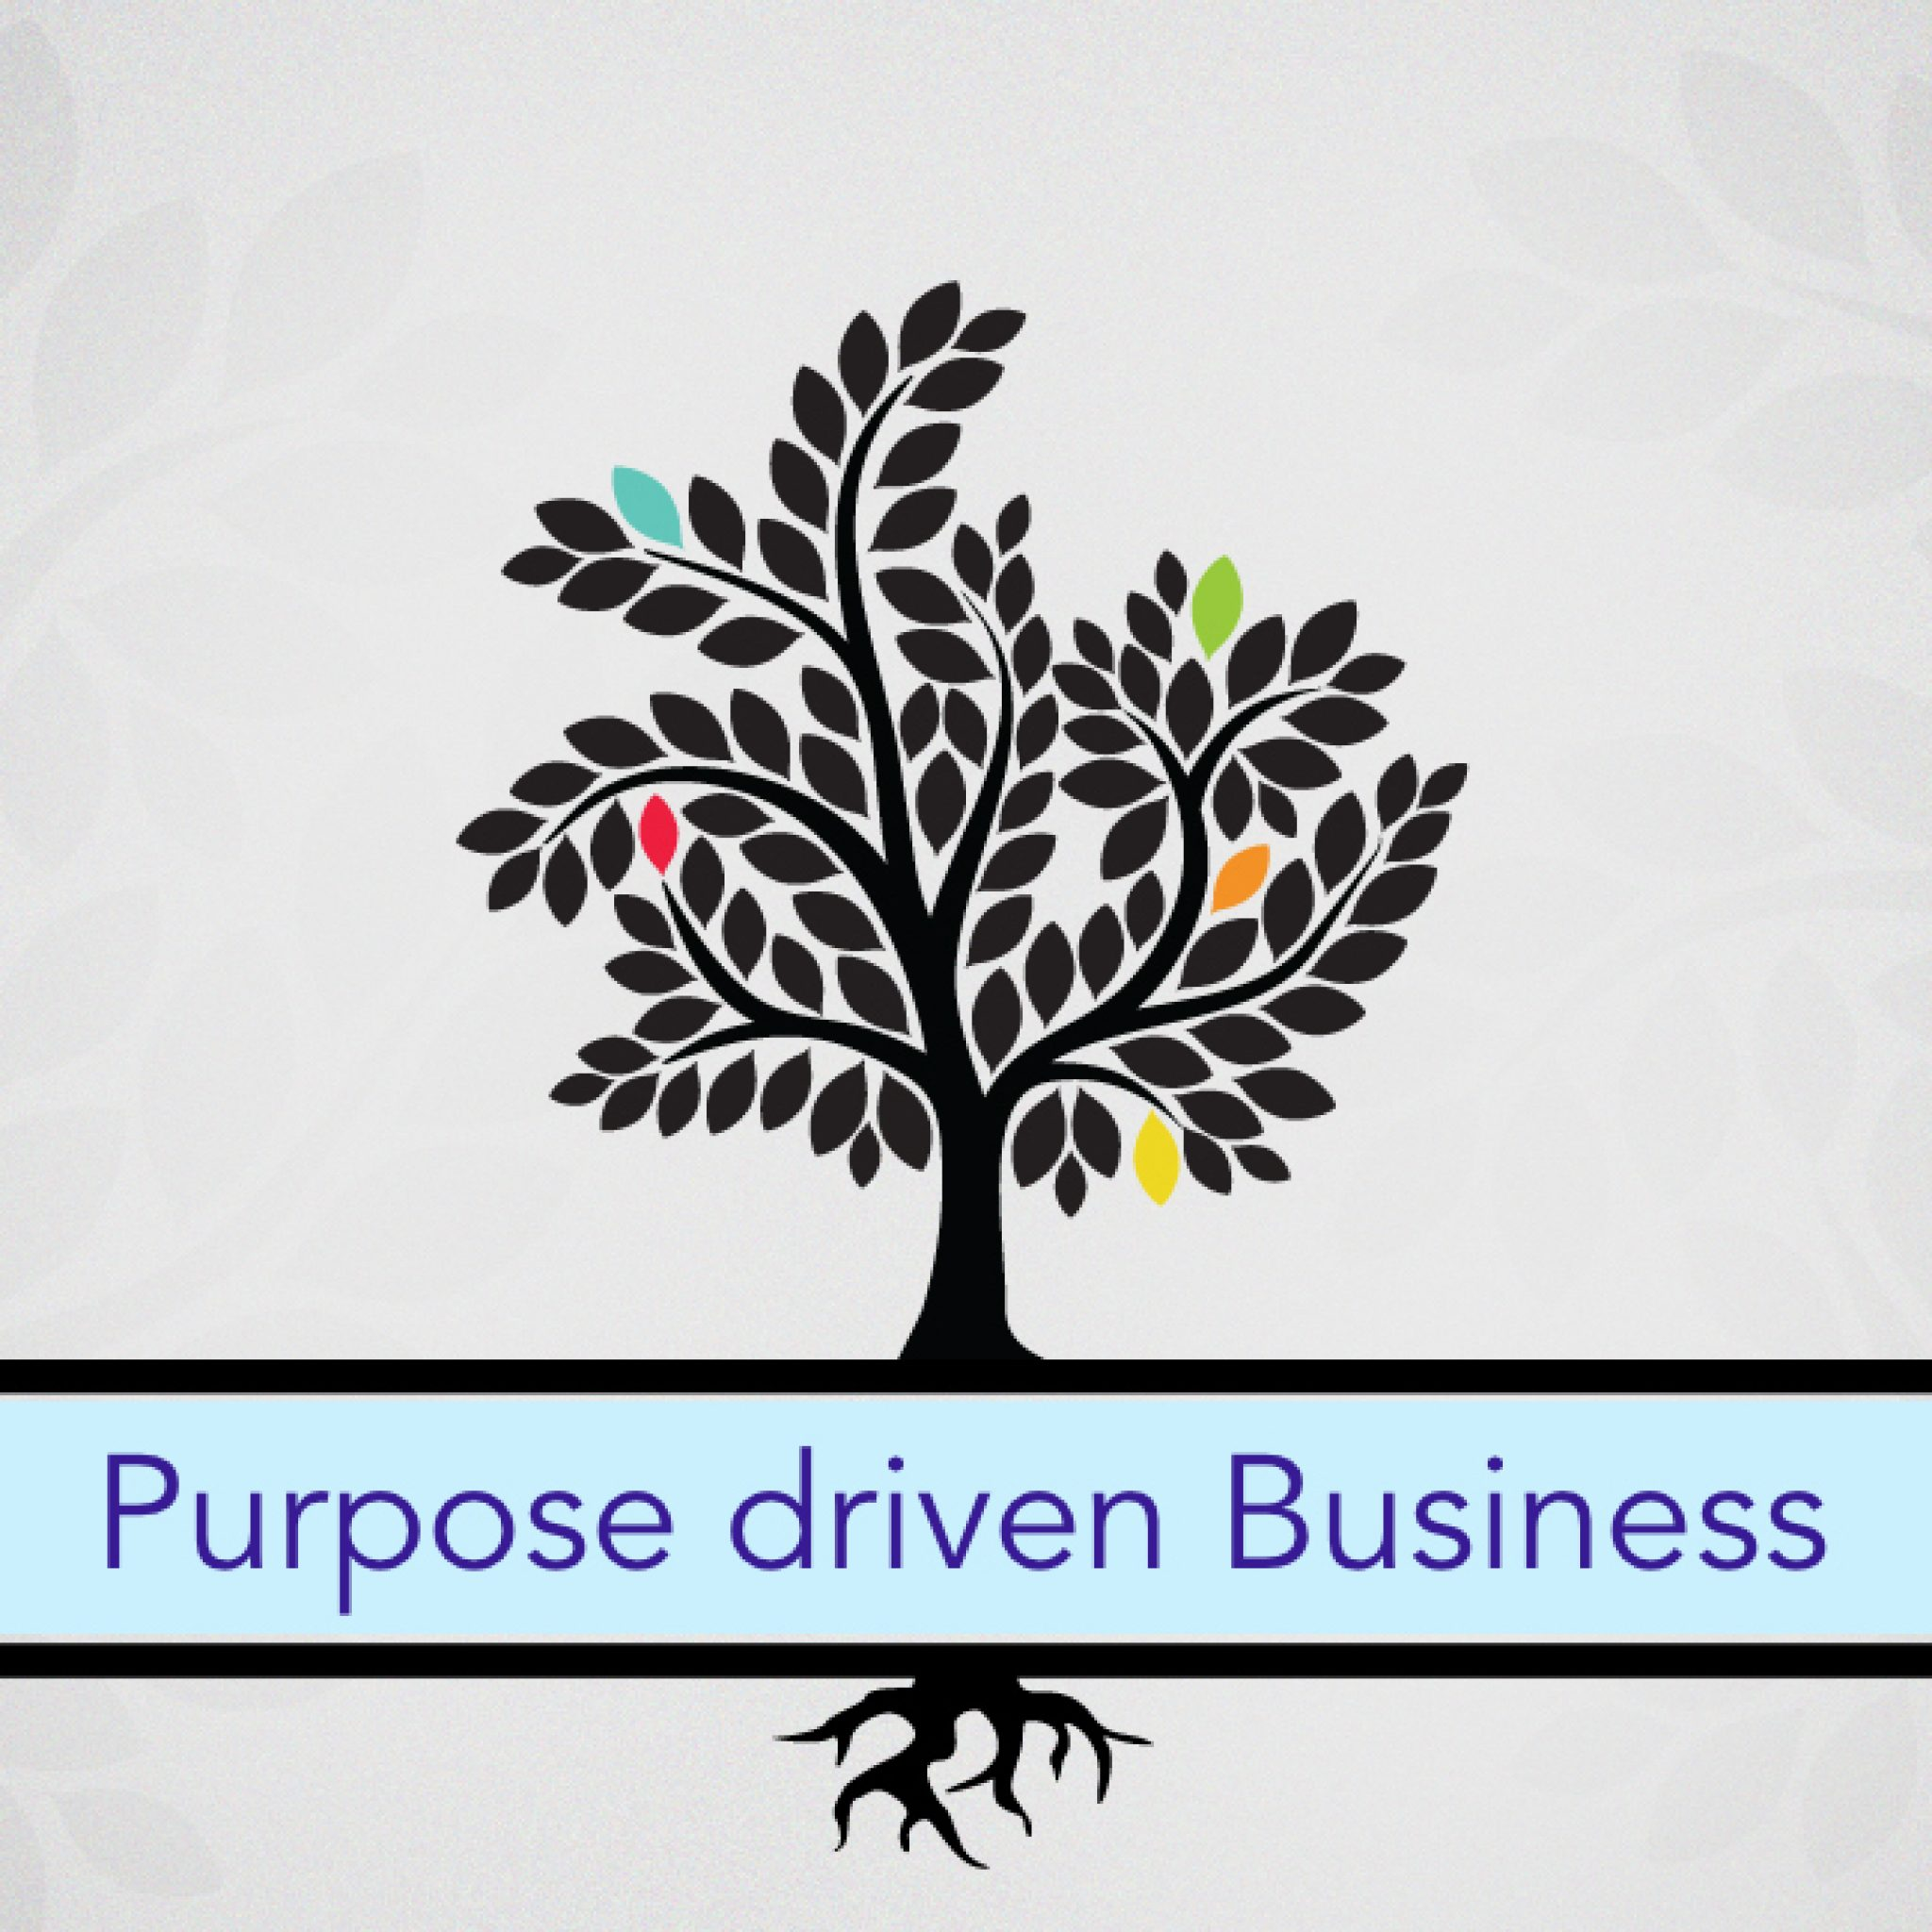 Image - who are you in your business? The Purpose economy as a business essential